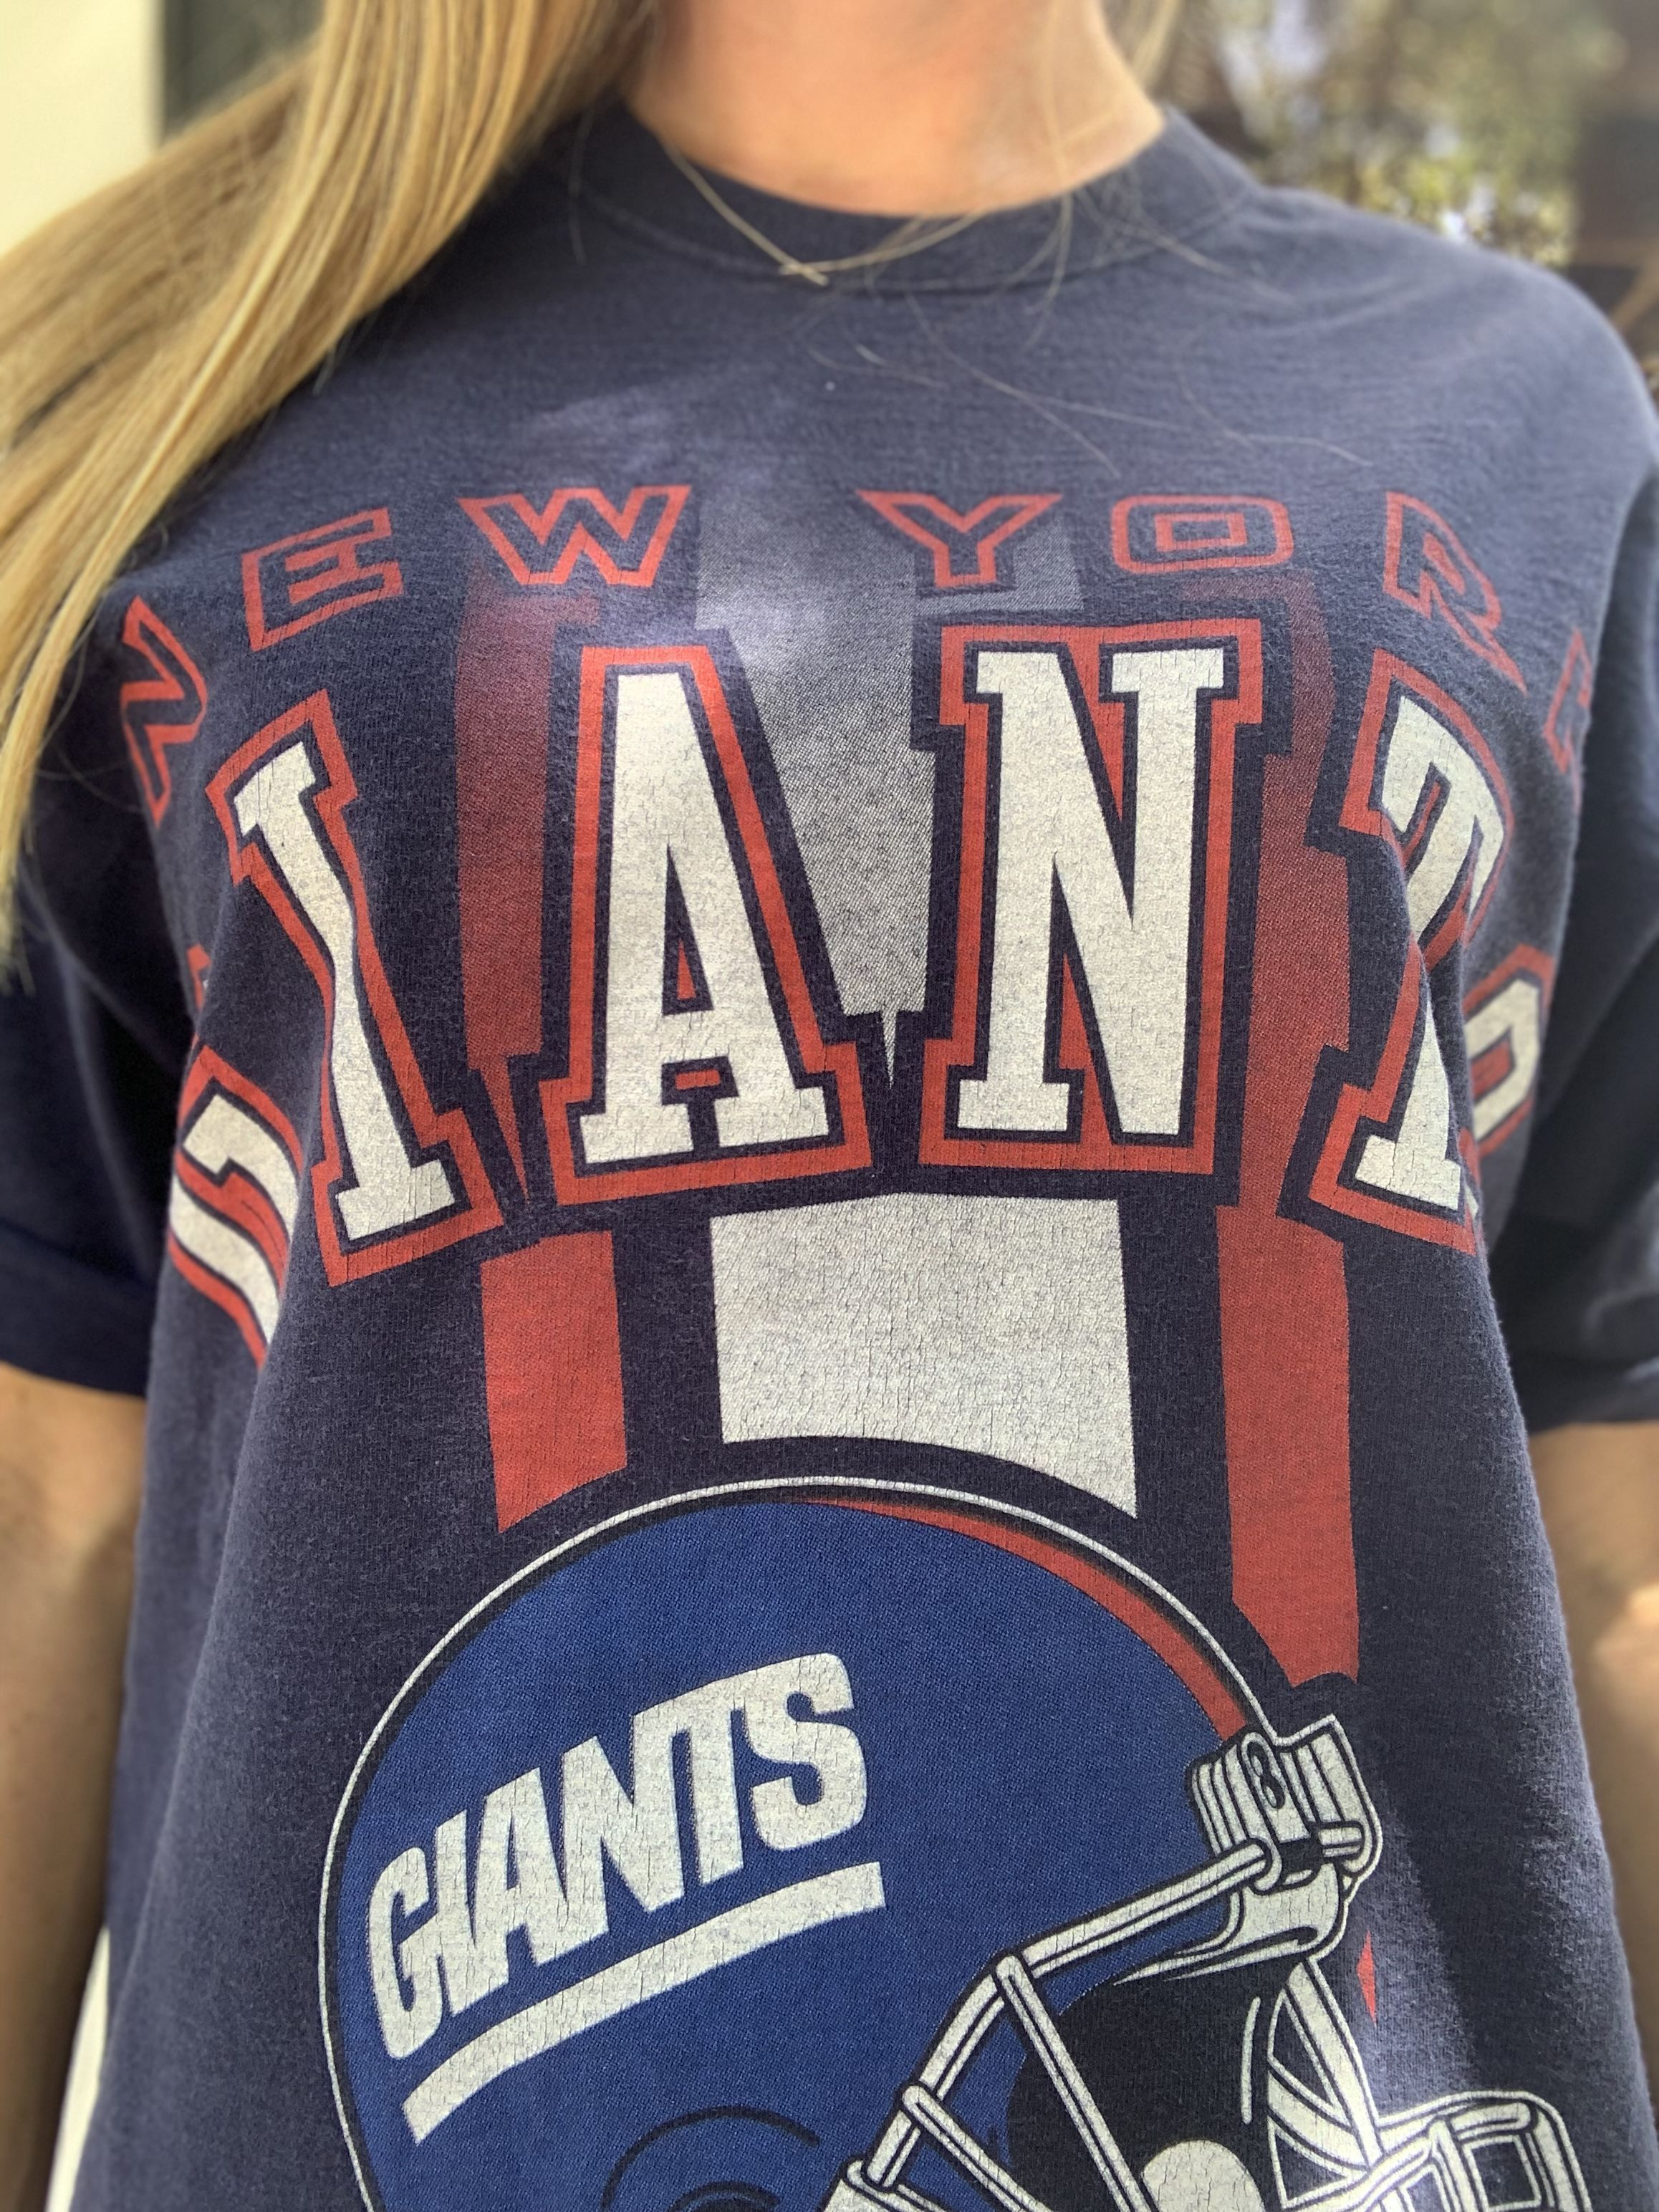 Pin On Vintage Team Wear T Shirts